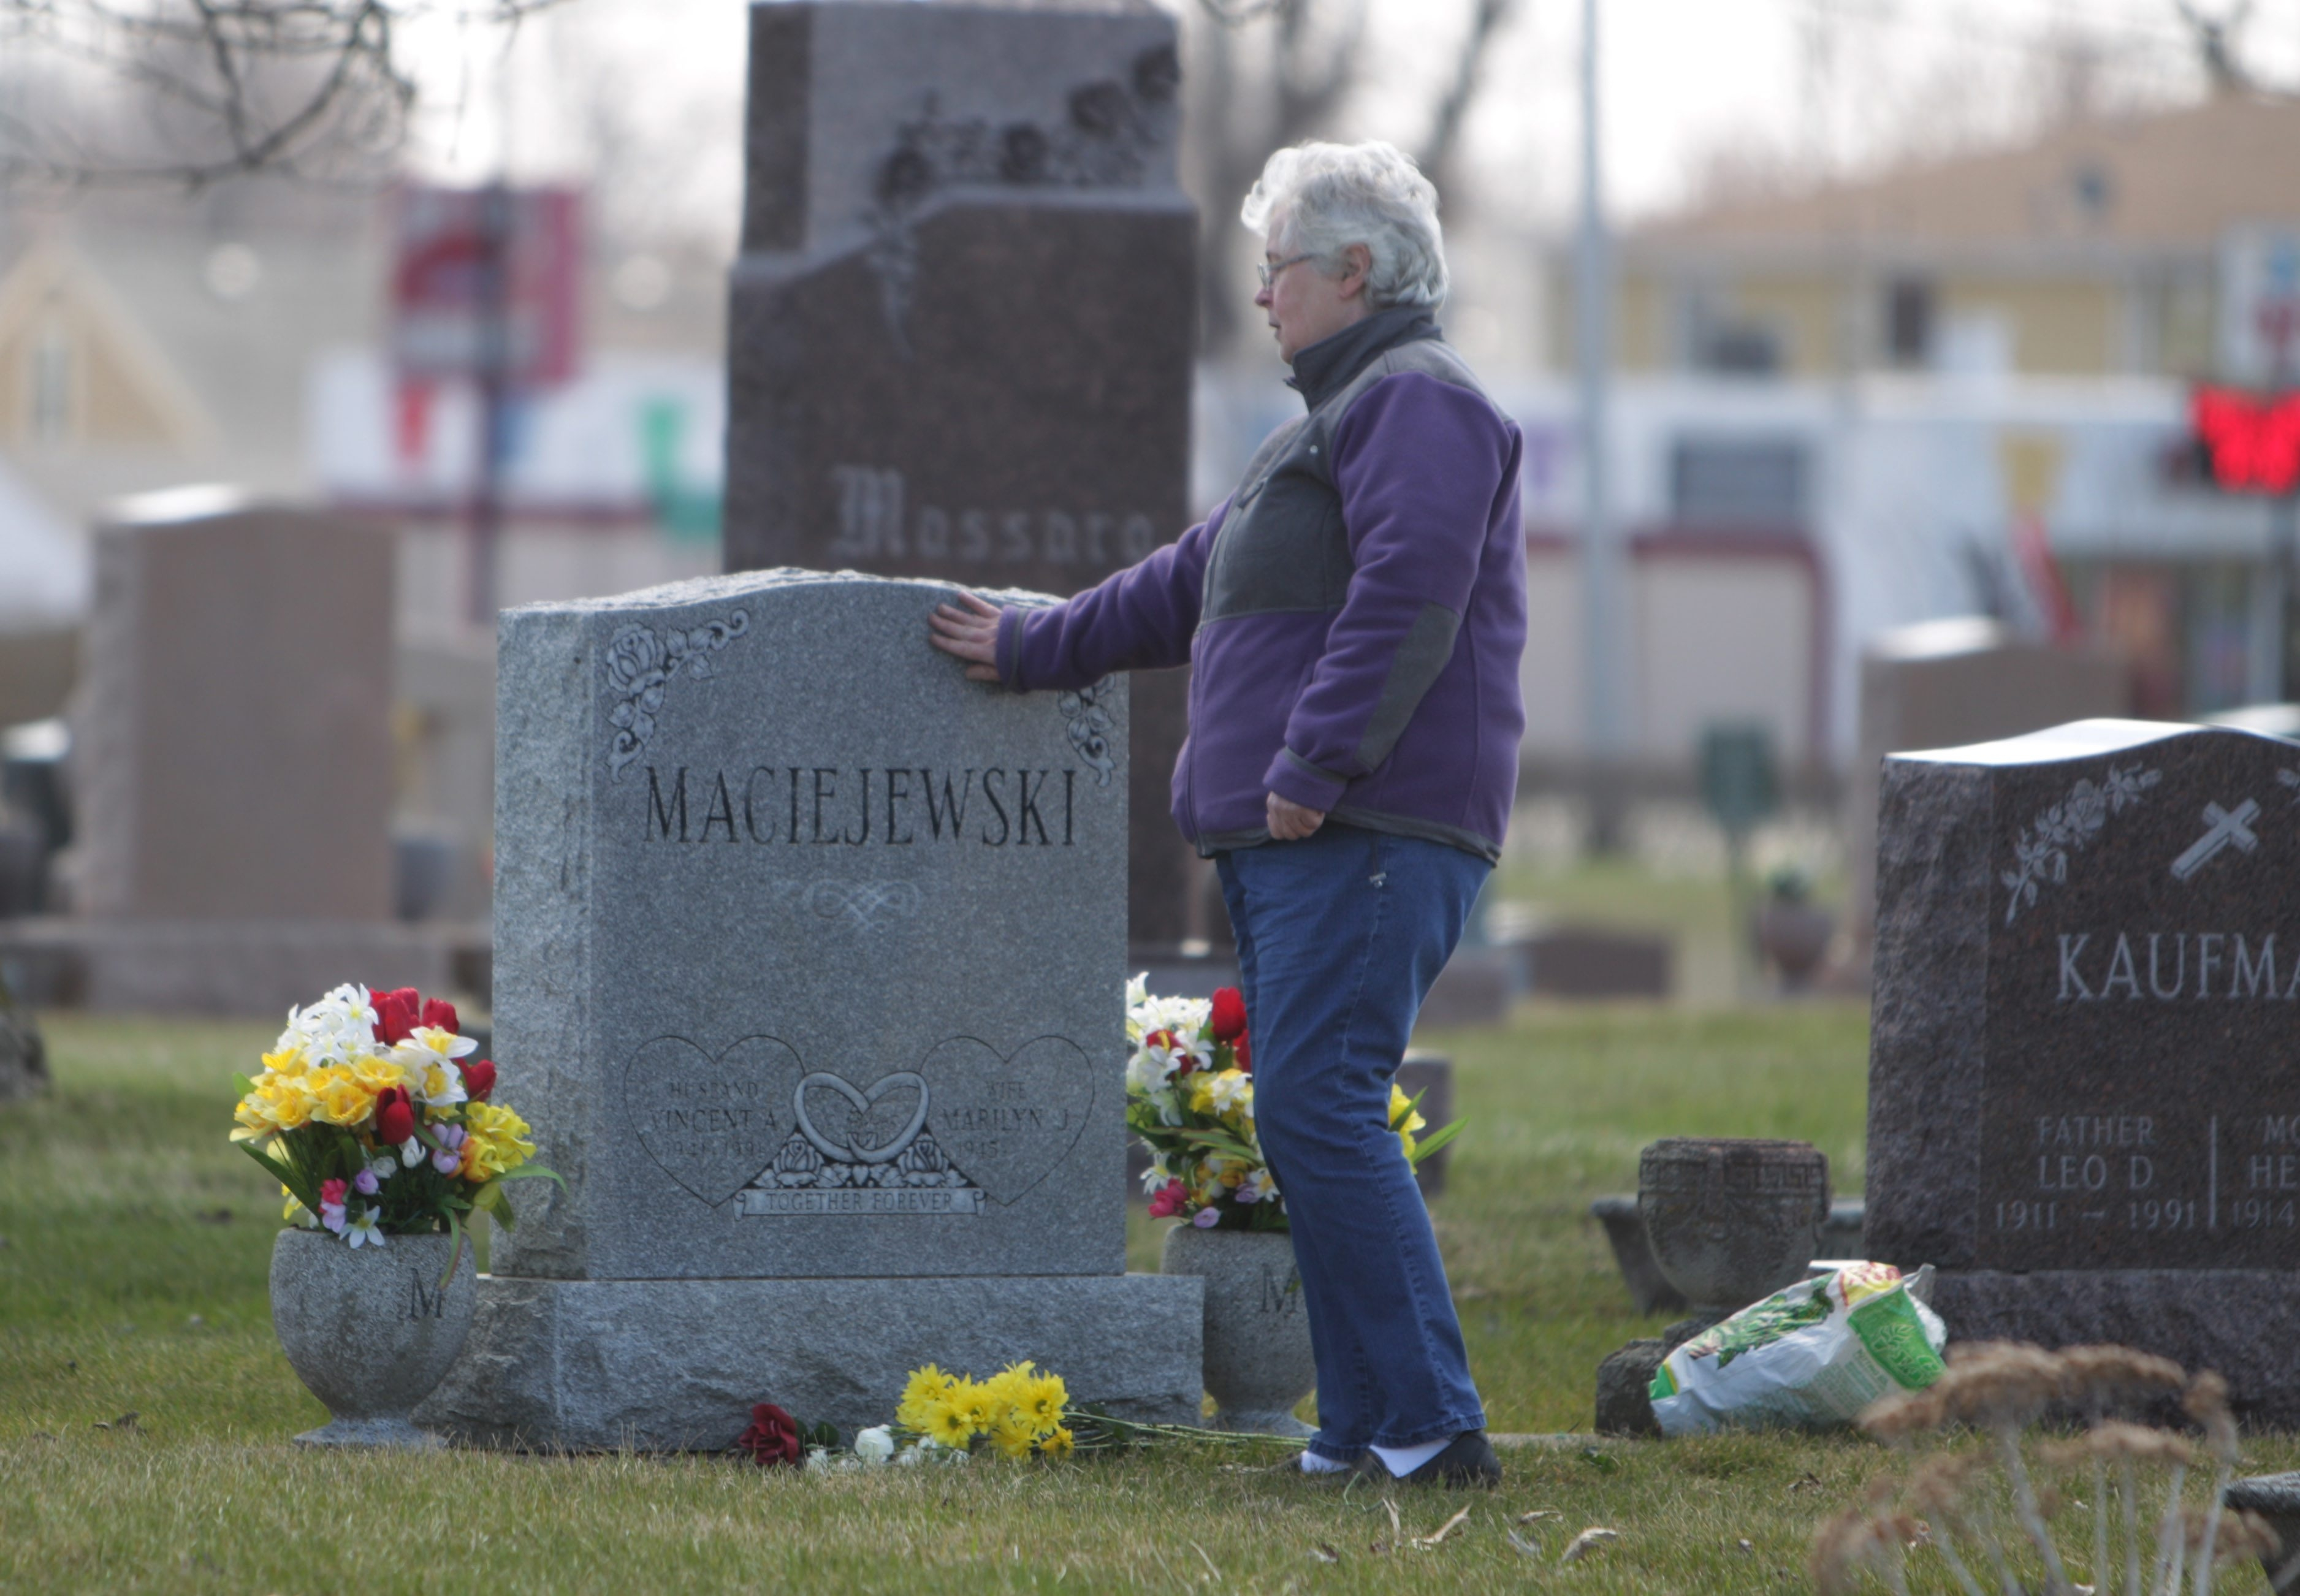 Marilyn Maciejewski touches the grave of her husband, Vincent, at Mount Calvary Cemetery on Saturday. Maciejewski also visited the graves of her brother and parents to commemorate the Easter holiday.